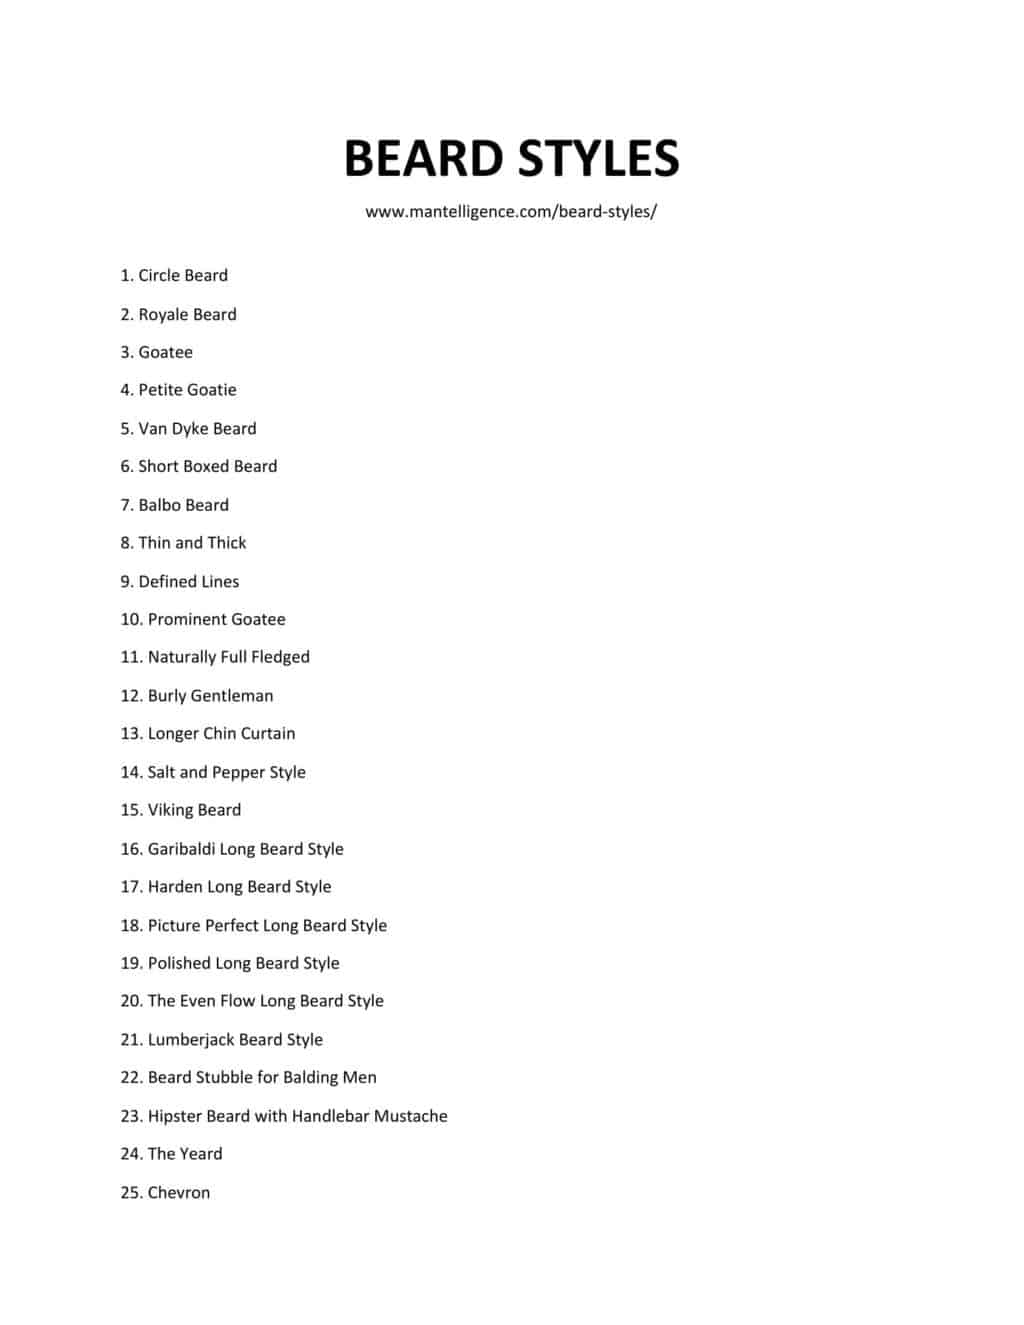 Downloadable and printable list of styles